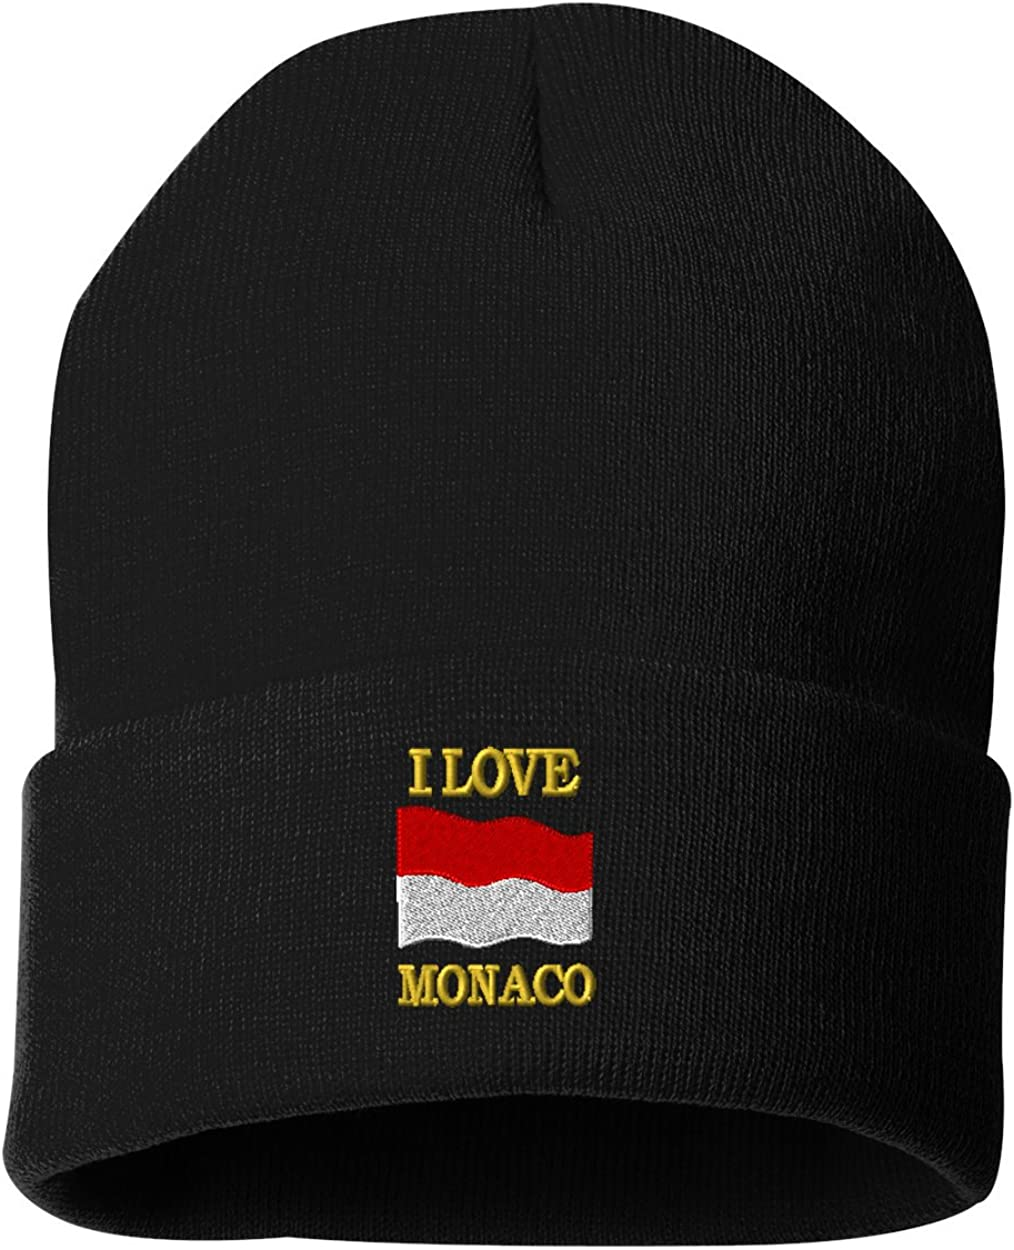 I LOVE MONACO Custom Personalized Embroidery Embroidered Beanie